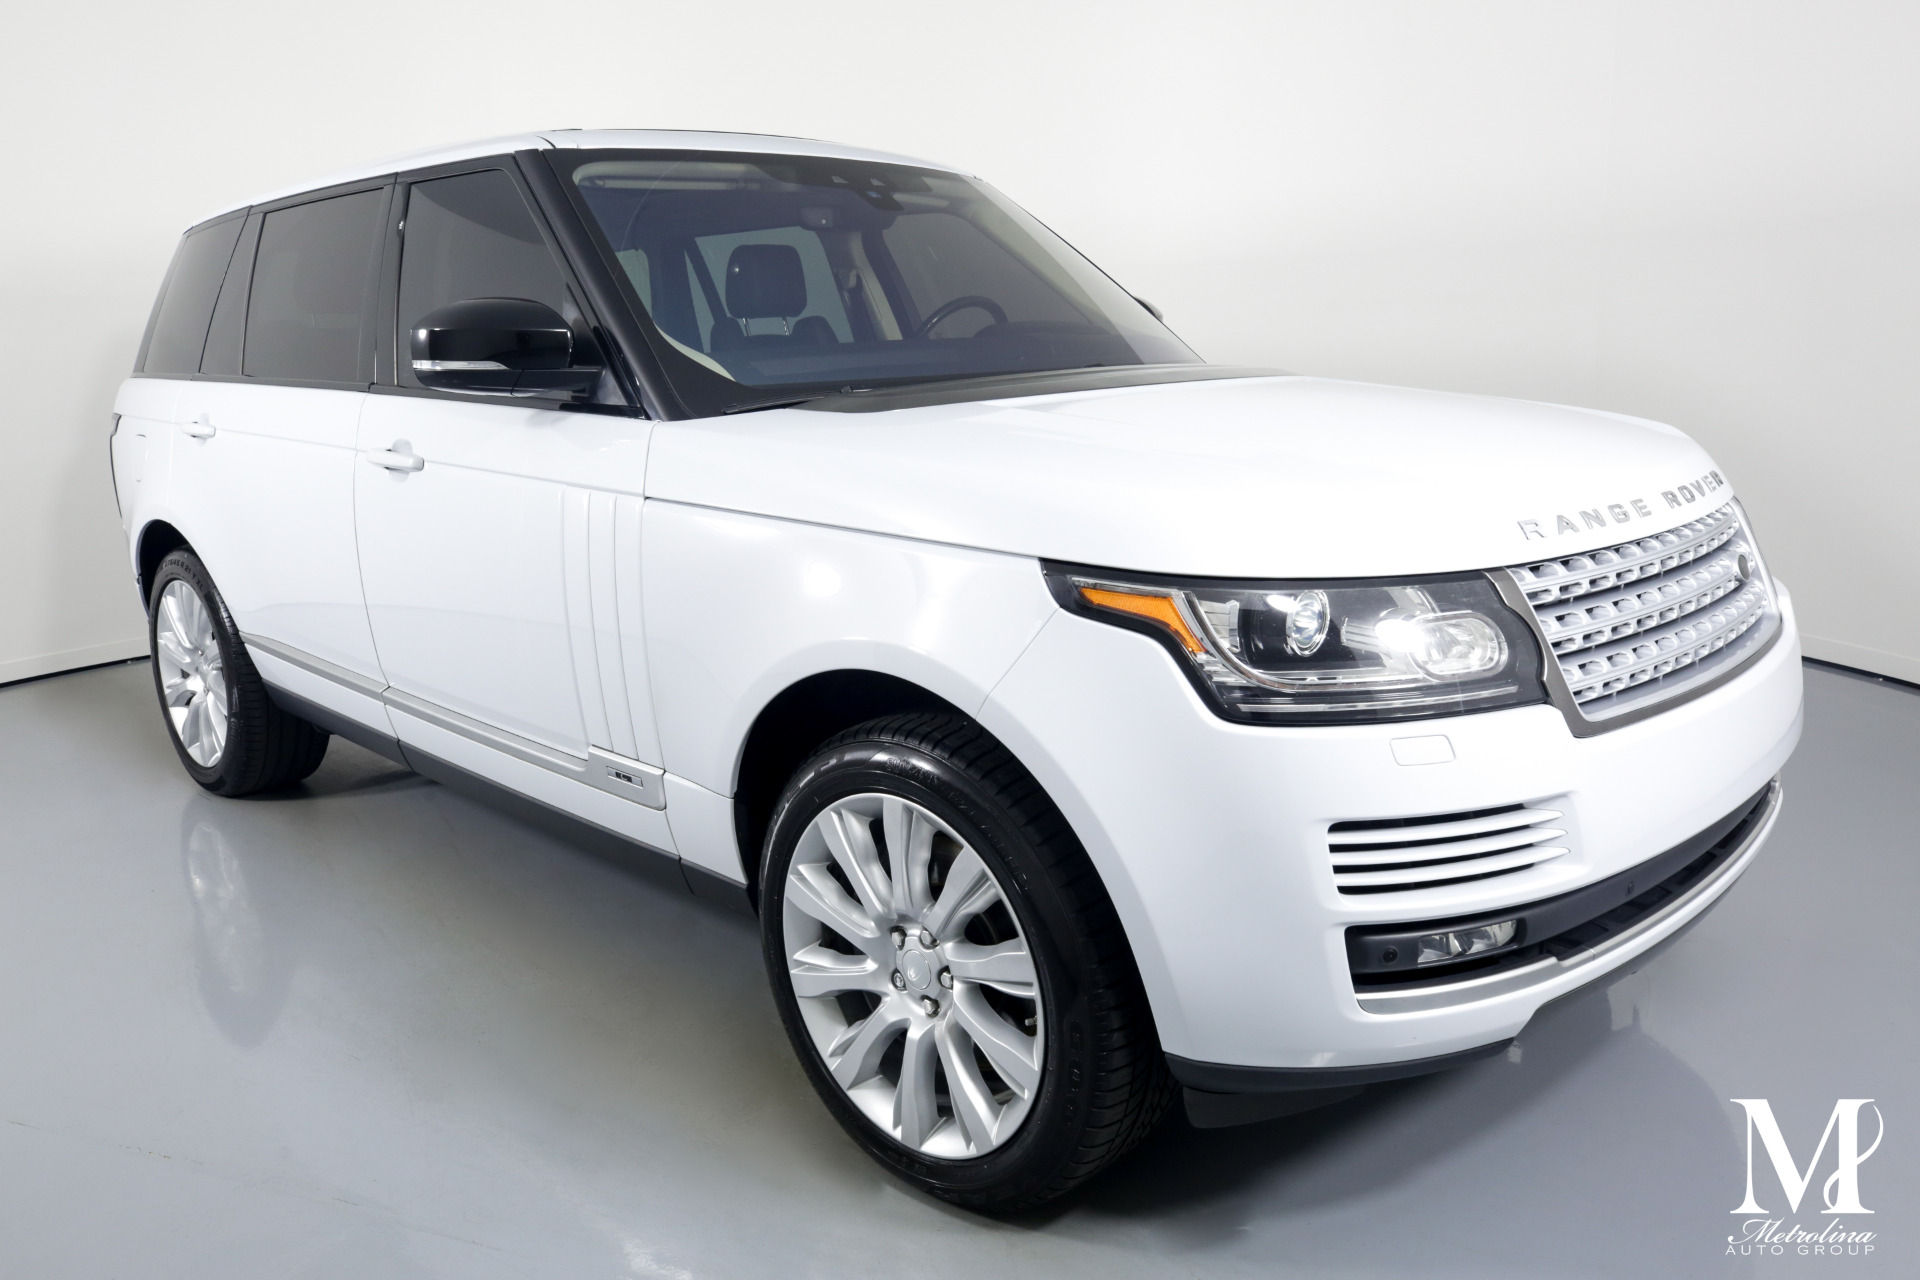 Used 2017 Land Rover Range Rover Supercharged LWB for sale $69,996 at Metrolina Auto Group in Charlotte NC 28217 - 2